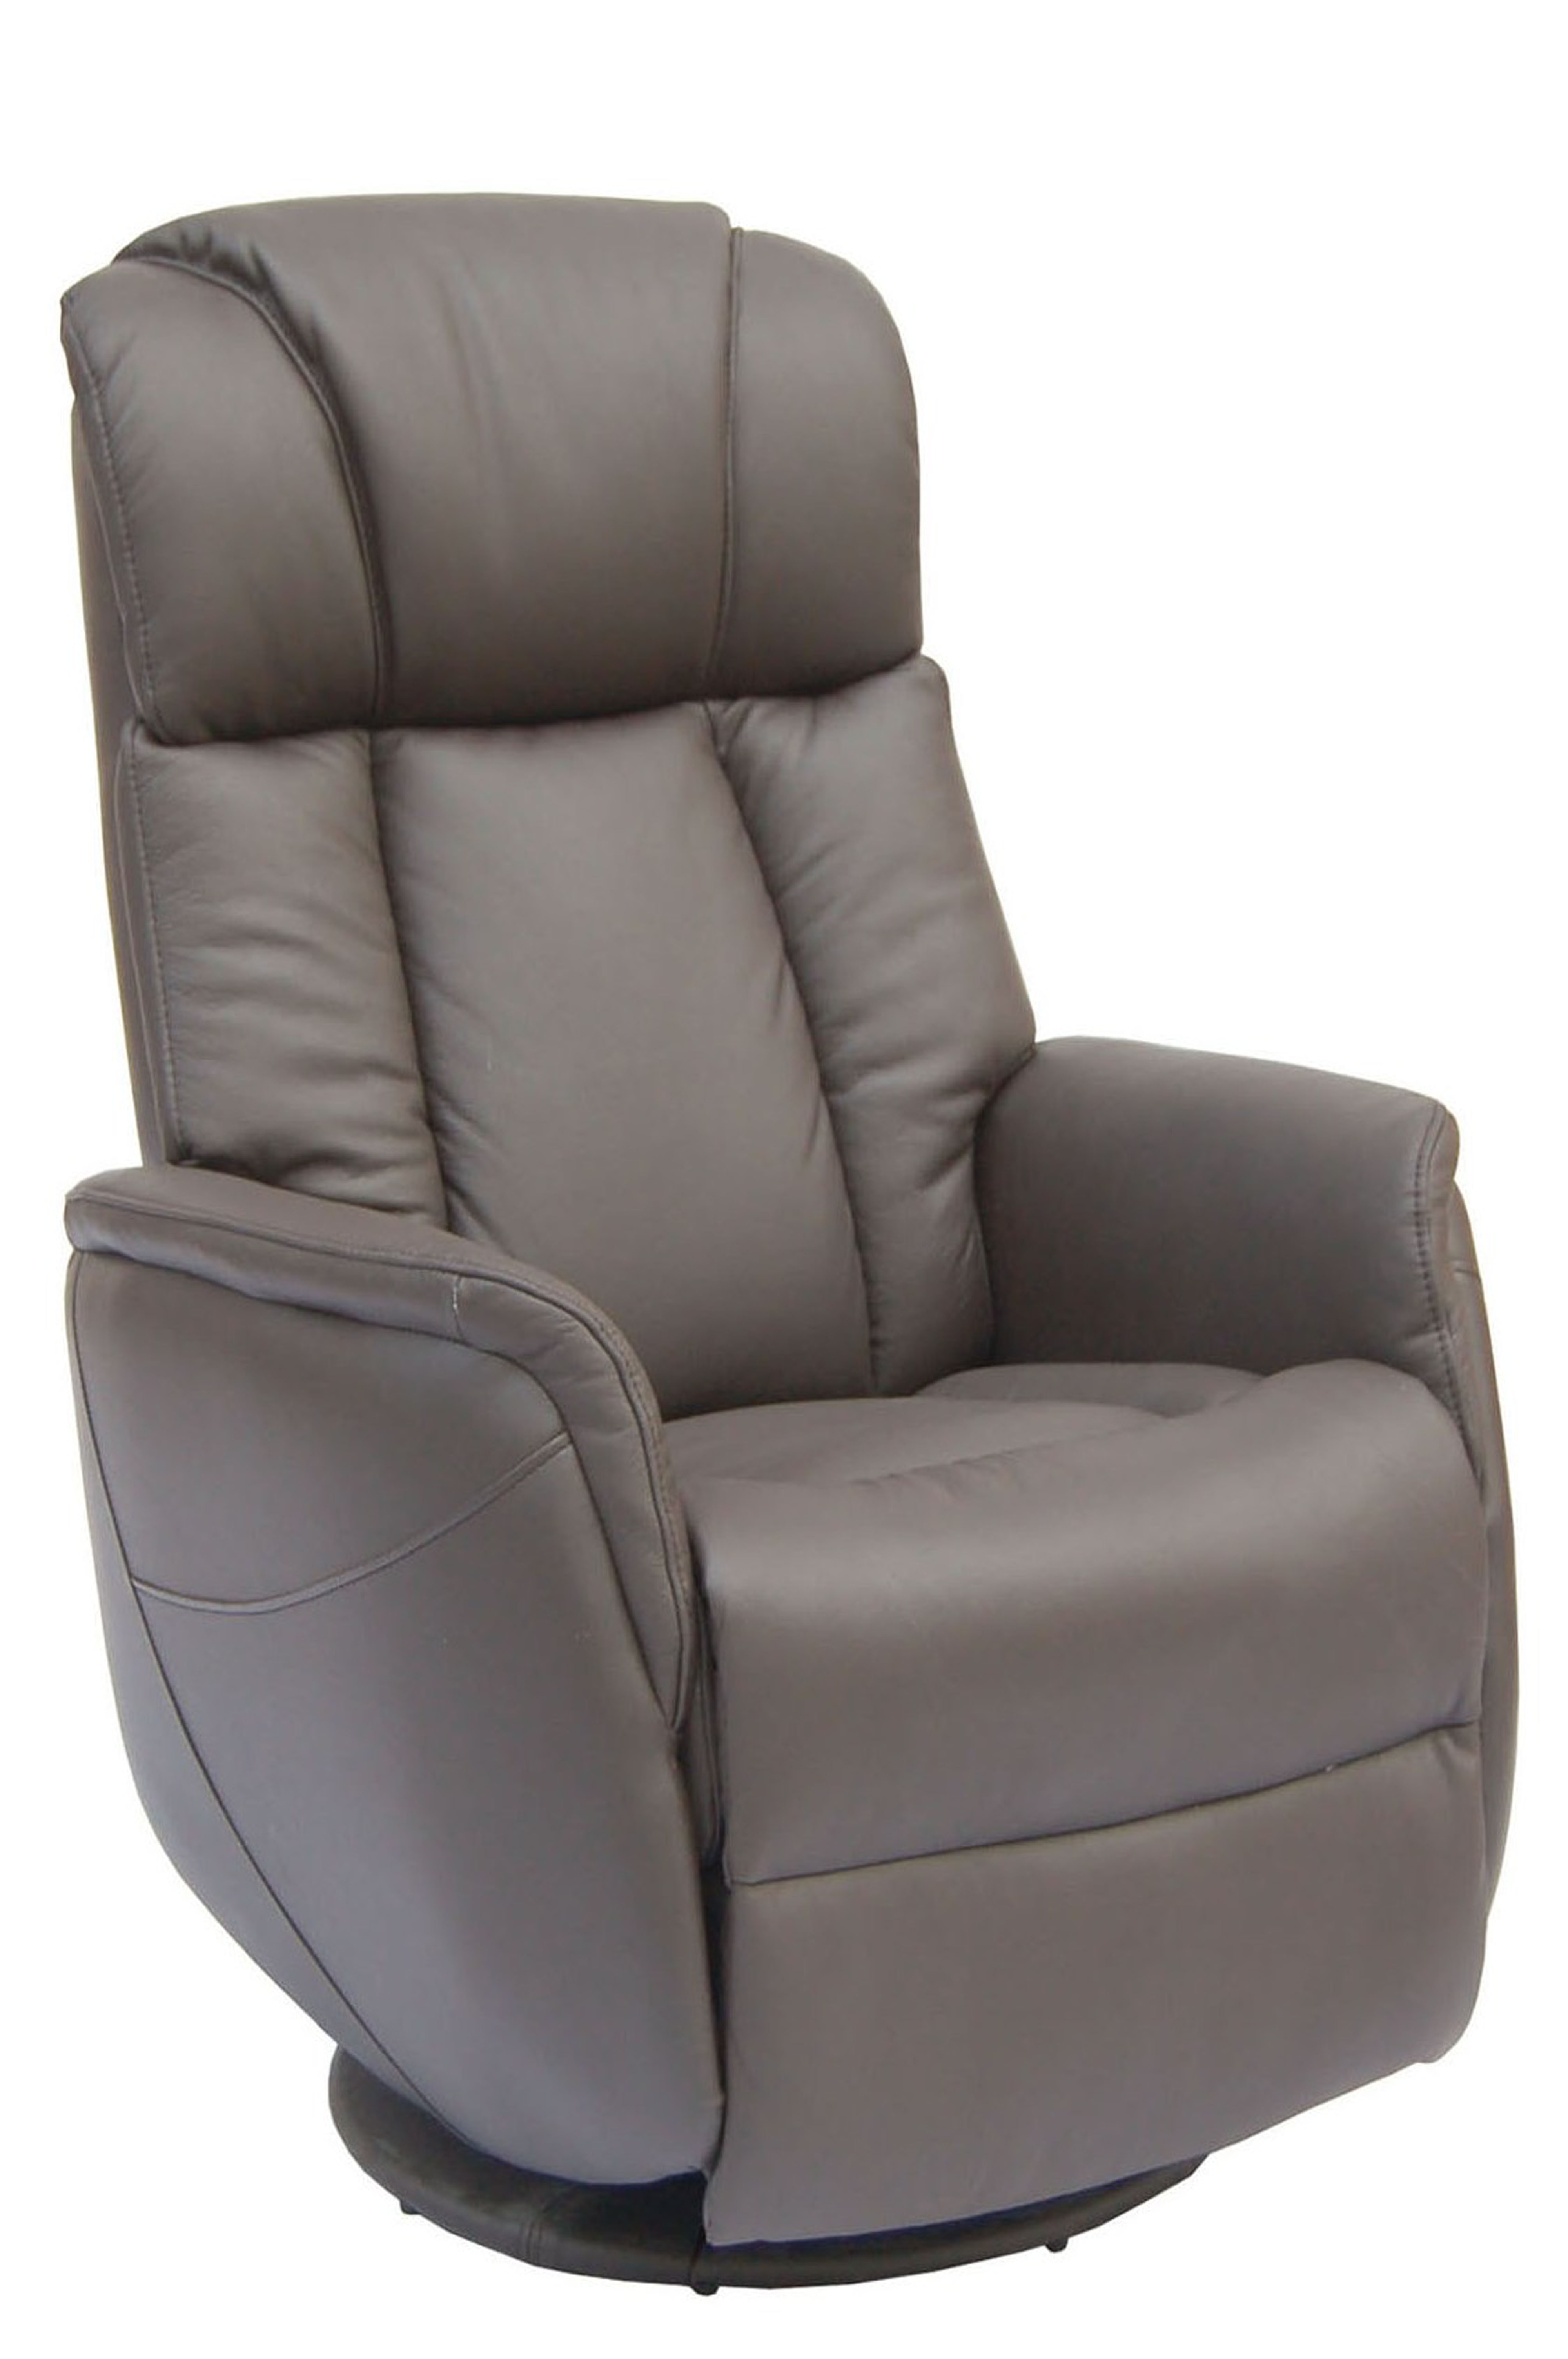 Swivel Recliner Chairs Gfa Sorrento Electric Rock Swivel Leather Recliner Chair Espresso